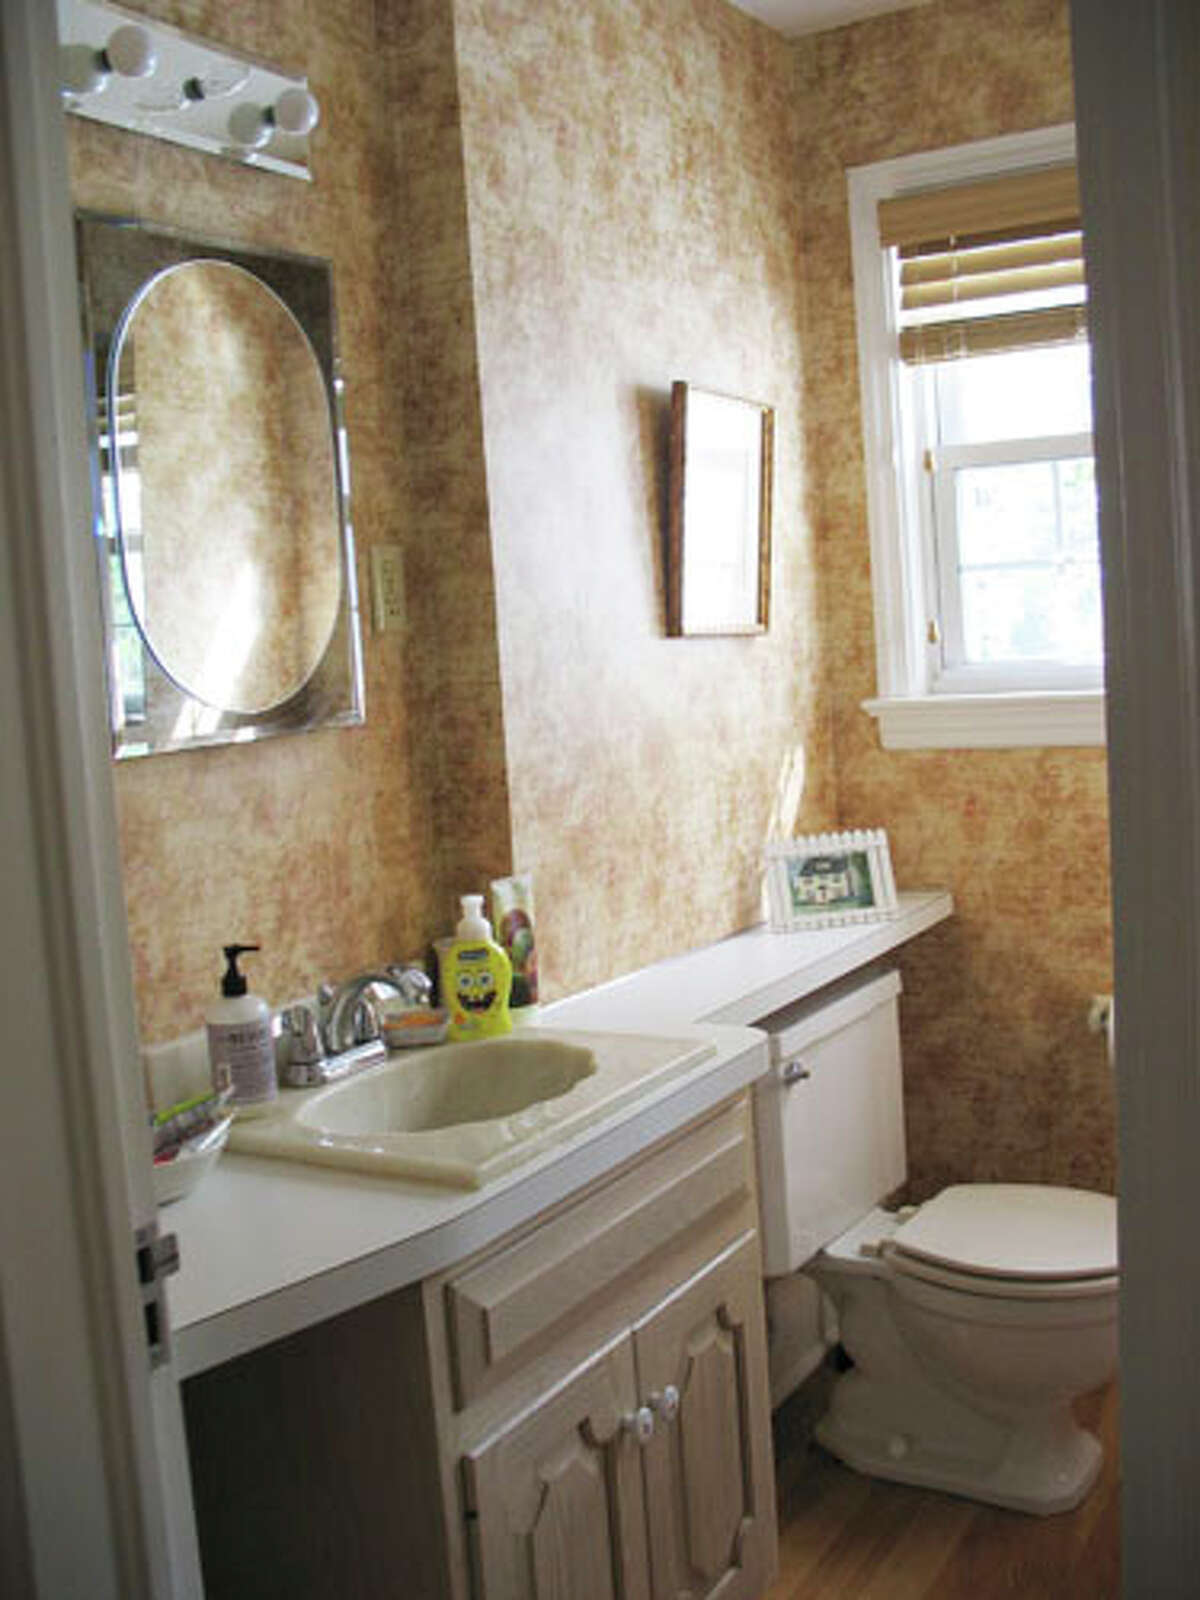 Get inspired with these gorgeous before and after photos and simple, clever tips. Before: Sponge-Painted and Outdated An old toilet and vanity mixed with heavy sponge-painted walls made this bathroom a prime makeover candidate. Read: 5 antique stoves and ovens